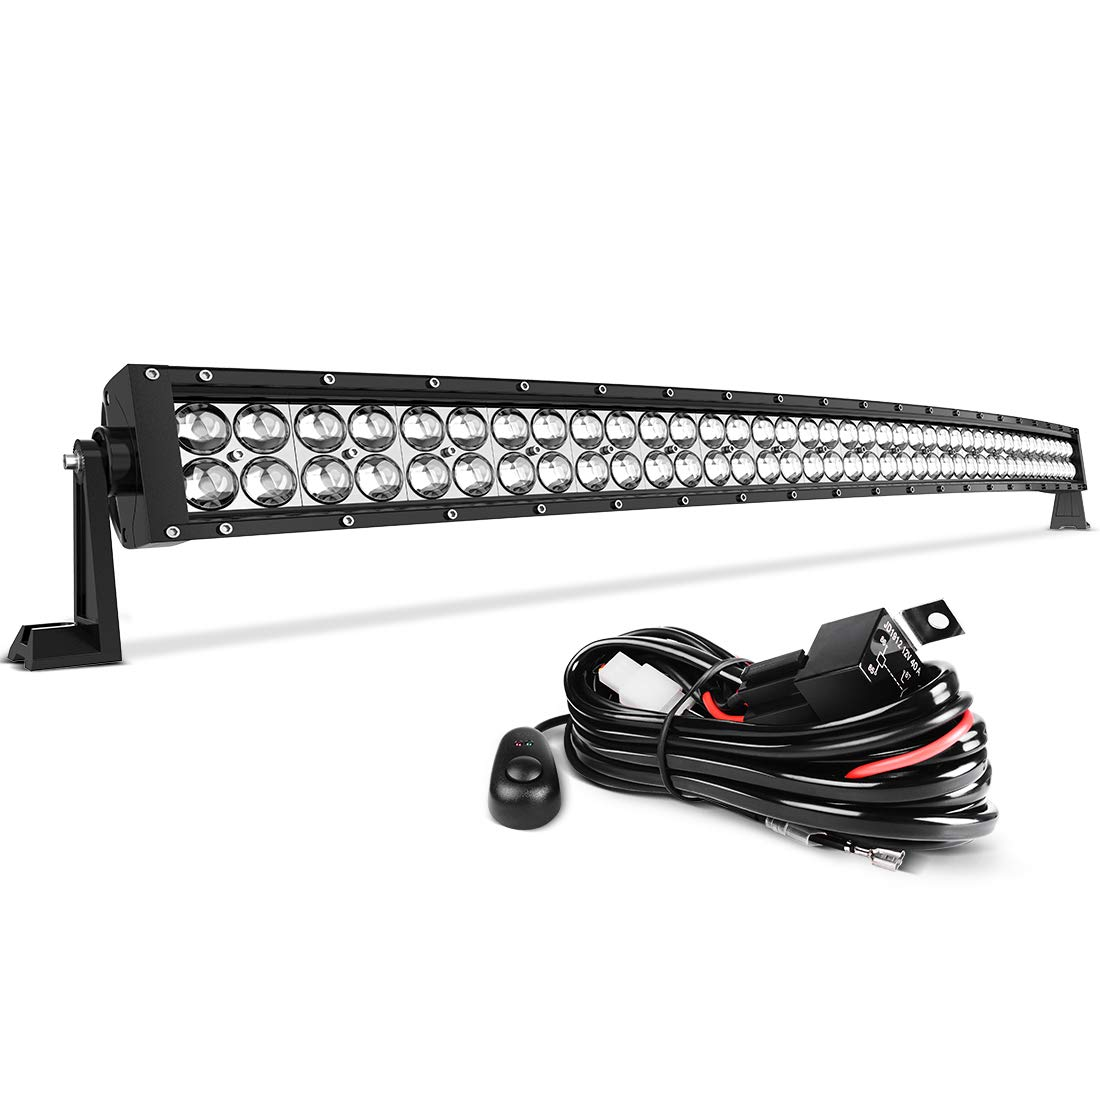 MICTUNING 42 240W 3B339C Curved LED Work Light Bar Combo Off Road Driving Fog Light 24-Month Warranty